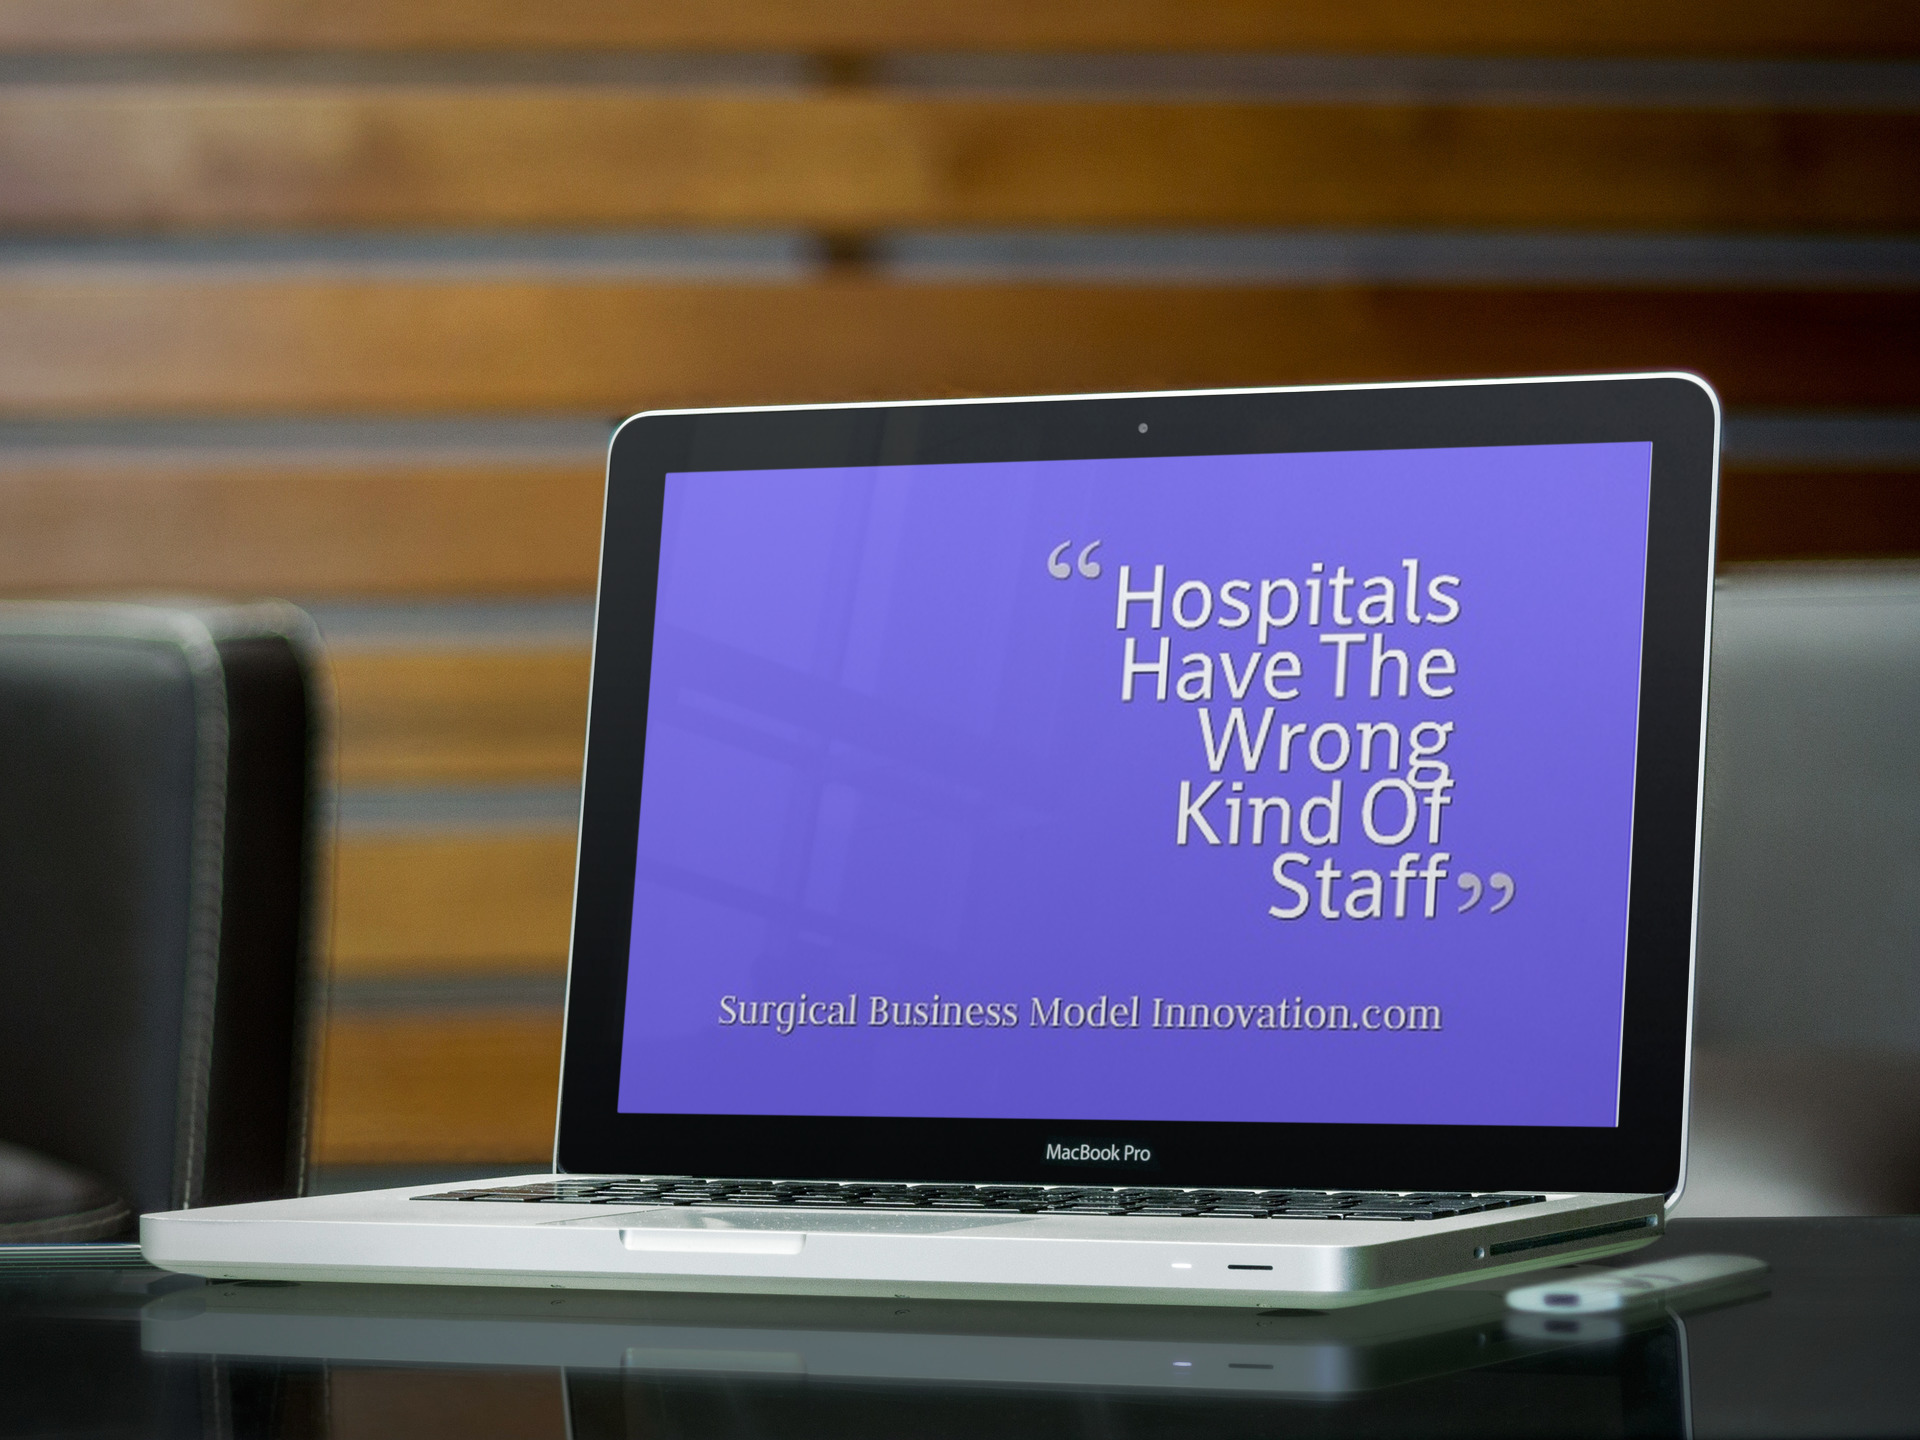 Let's Staff Hospitals Correctly